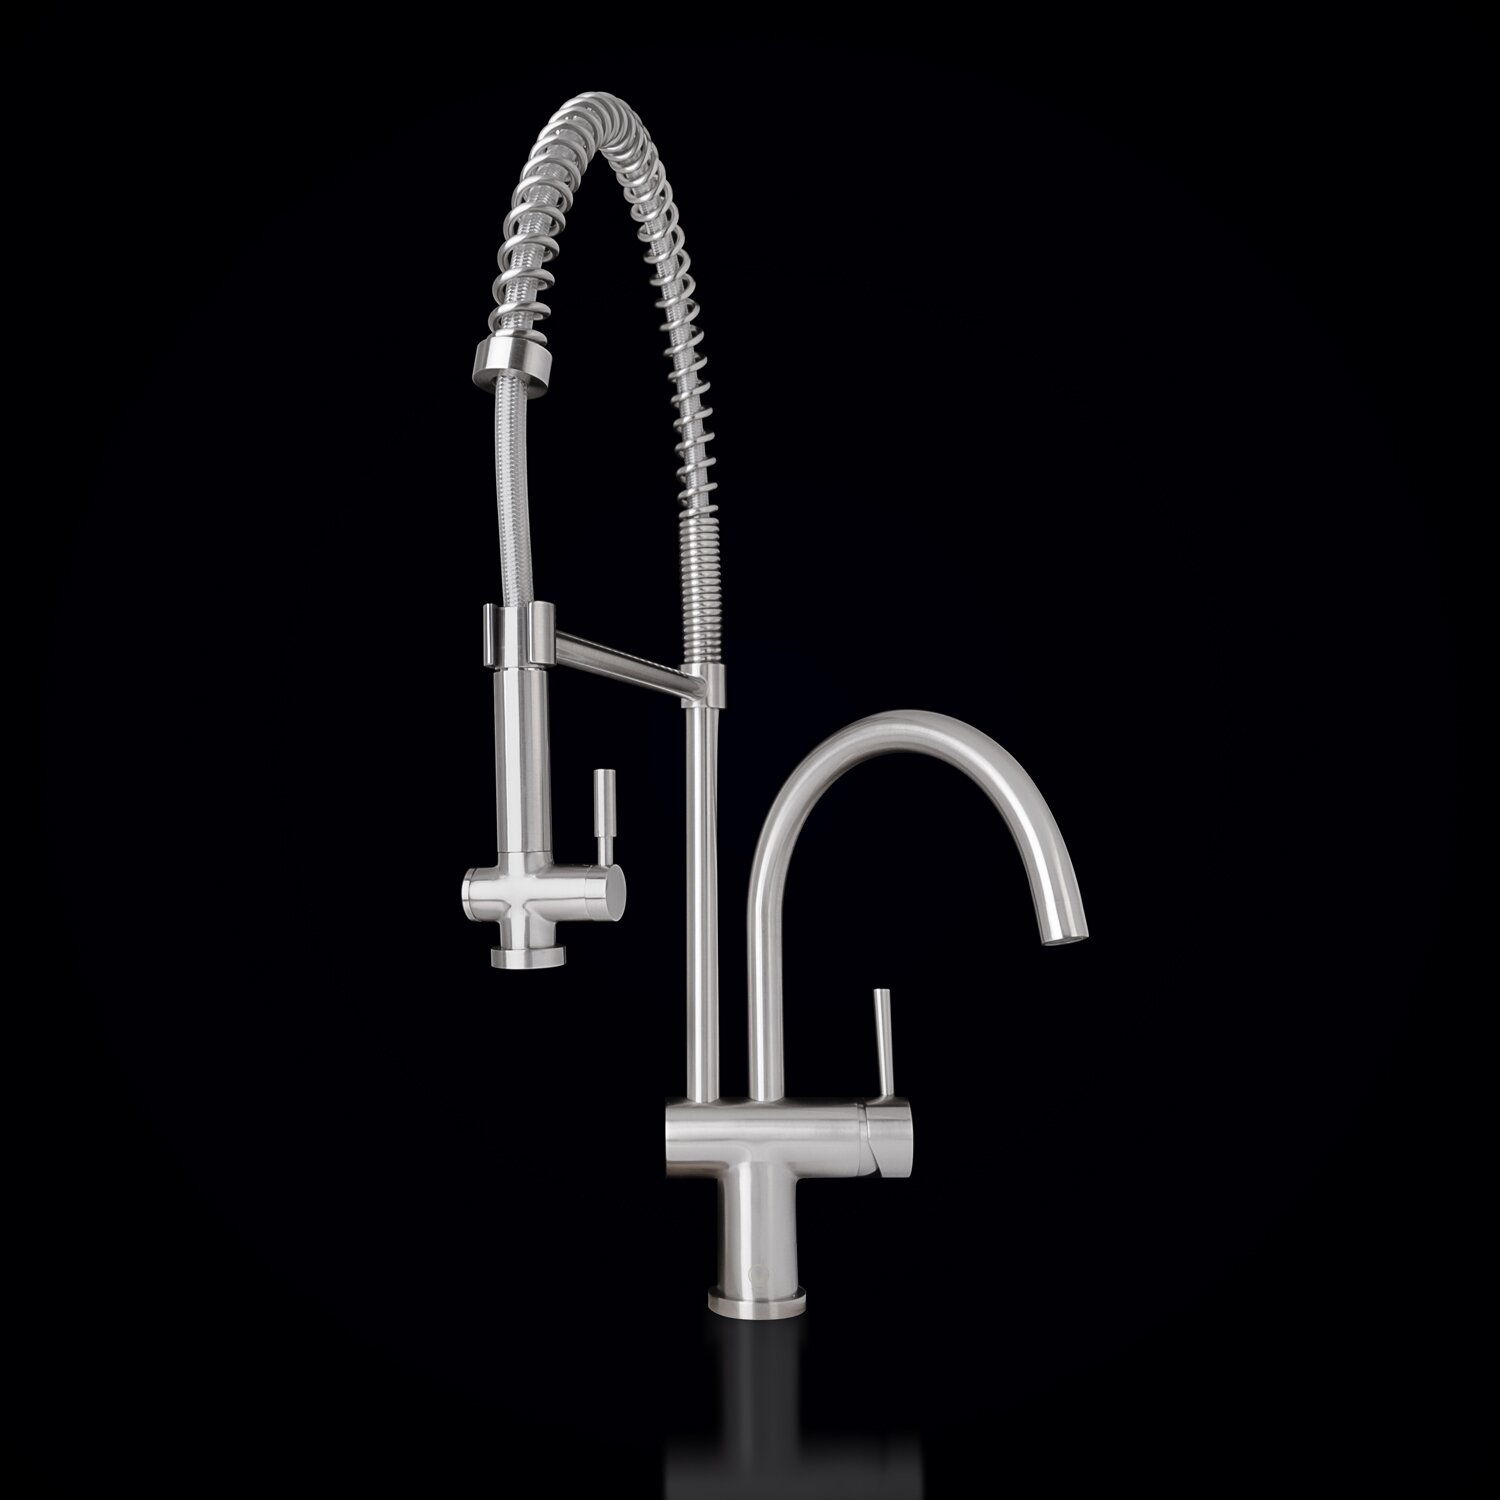 vigo kitchen faucet vigo dresden pull down spray kitchen faucet reviews wayfair 9691